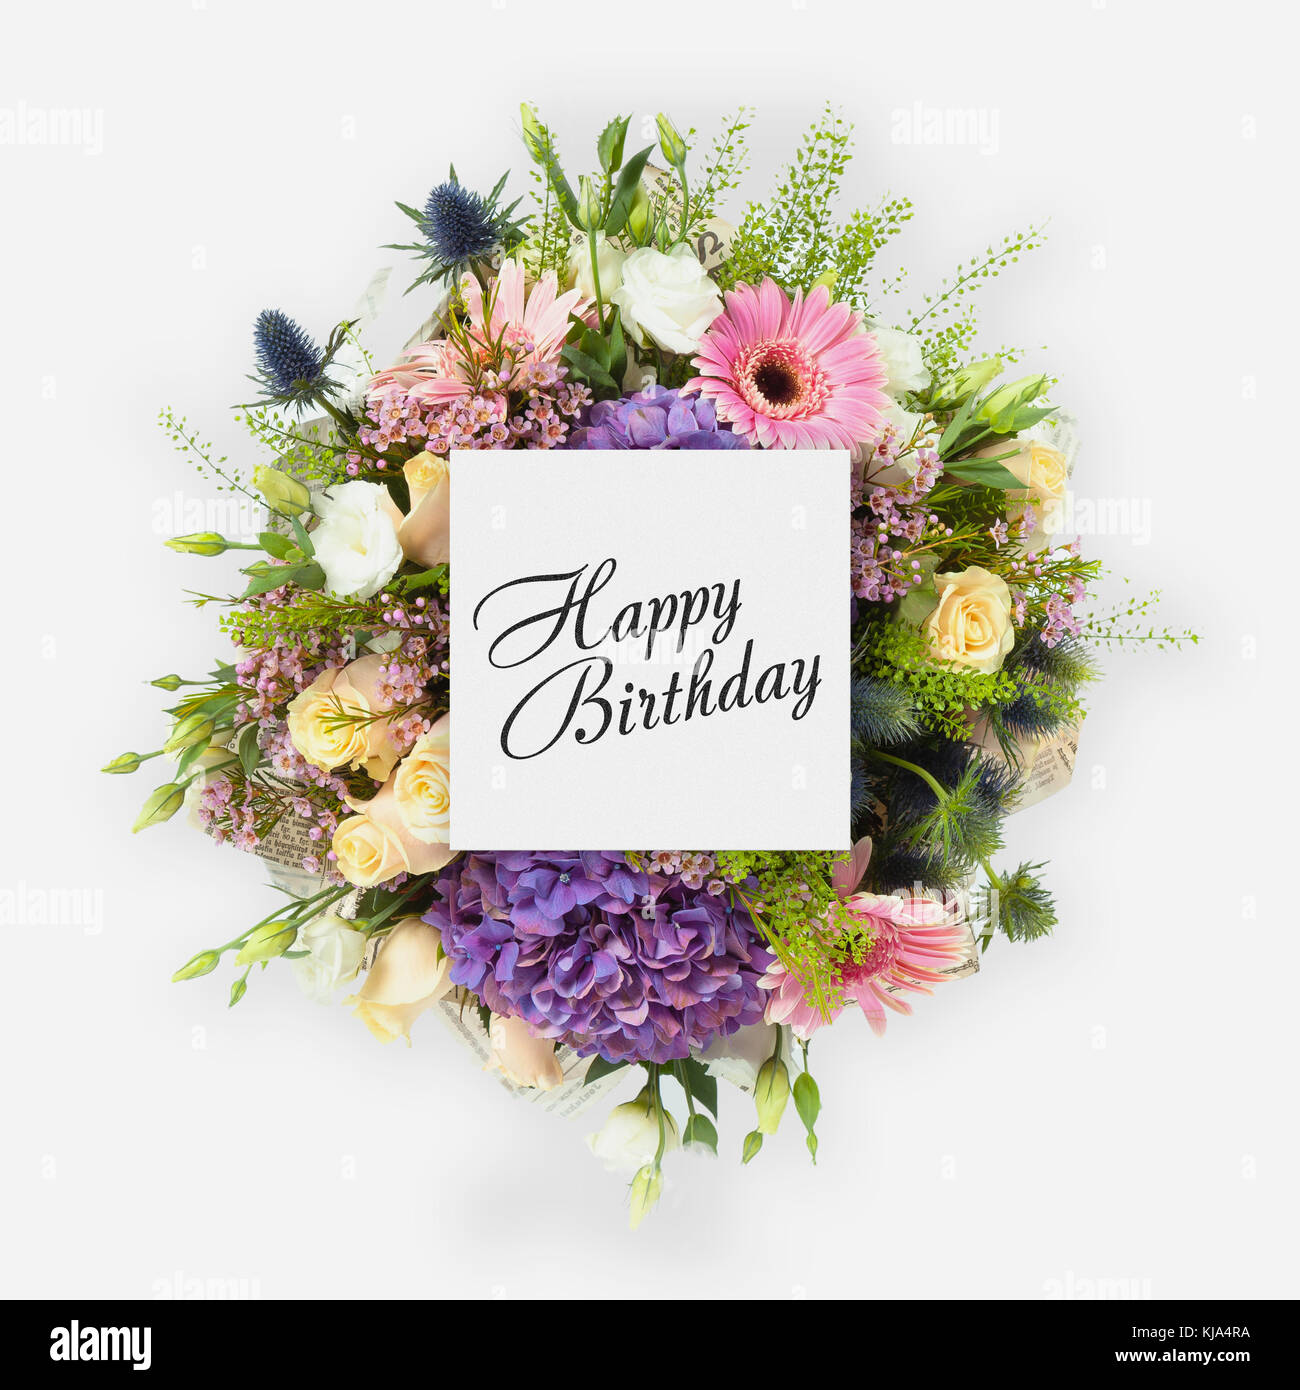 Happy Birthday Card With Flowers Flat Lay Stock Photo 166180430 Alamy